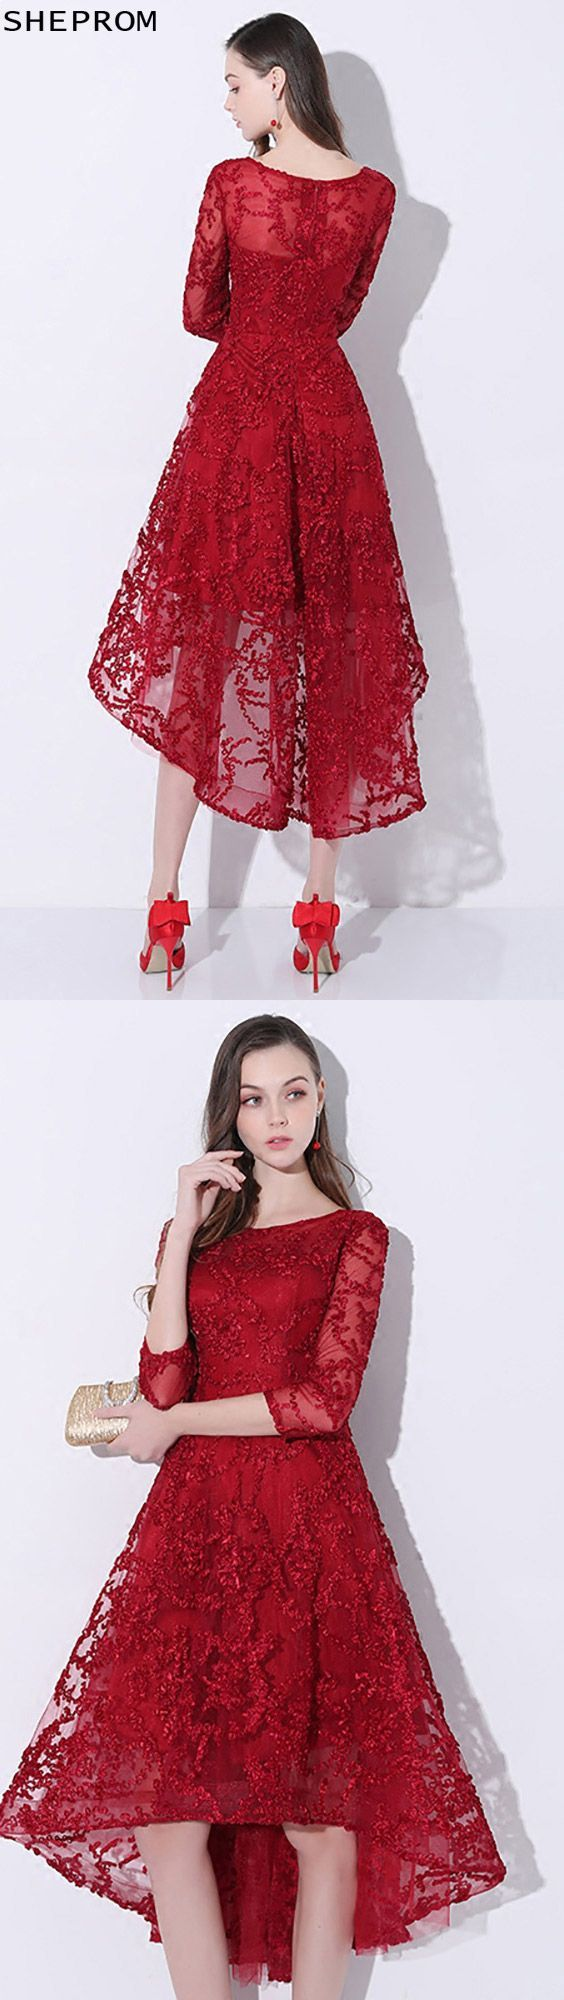 Trendy burgundy red lace homecoming dress high low with sleeves